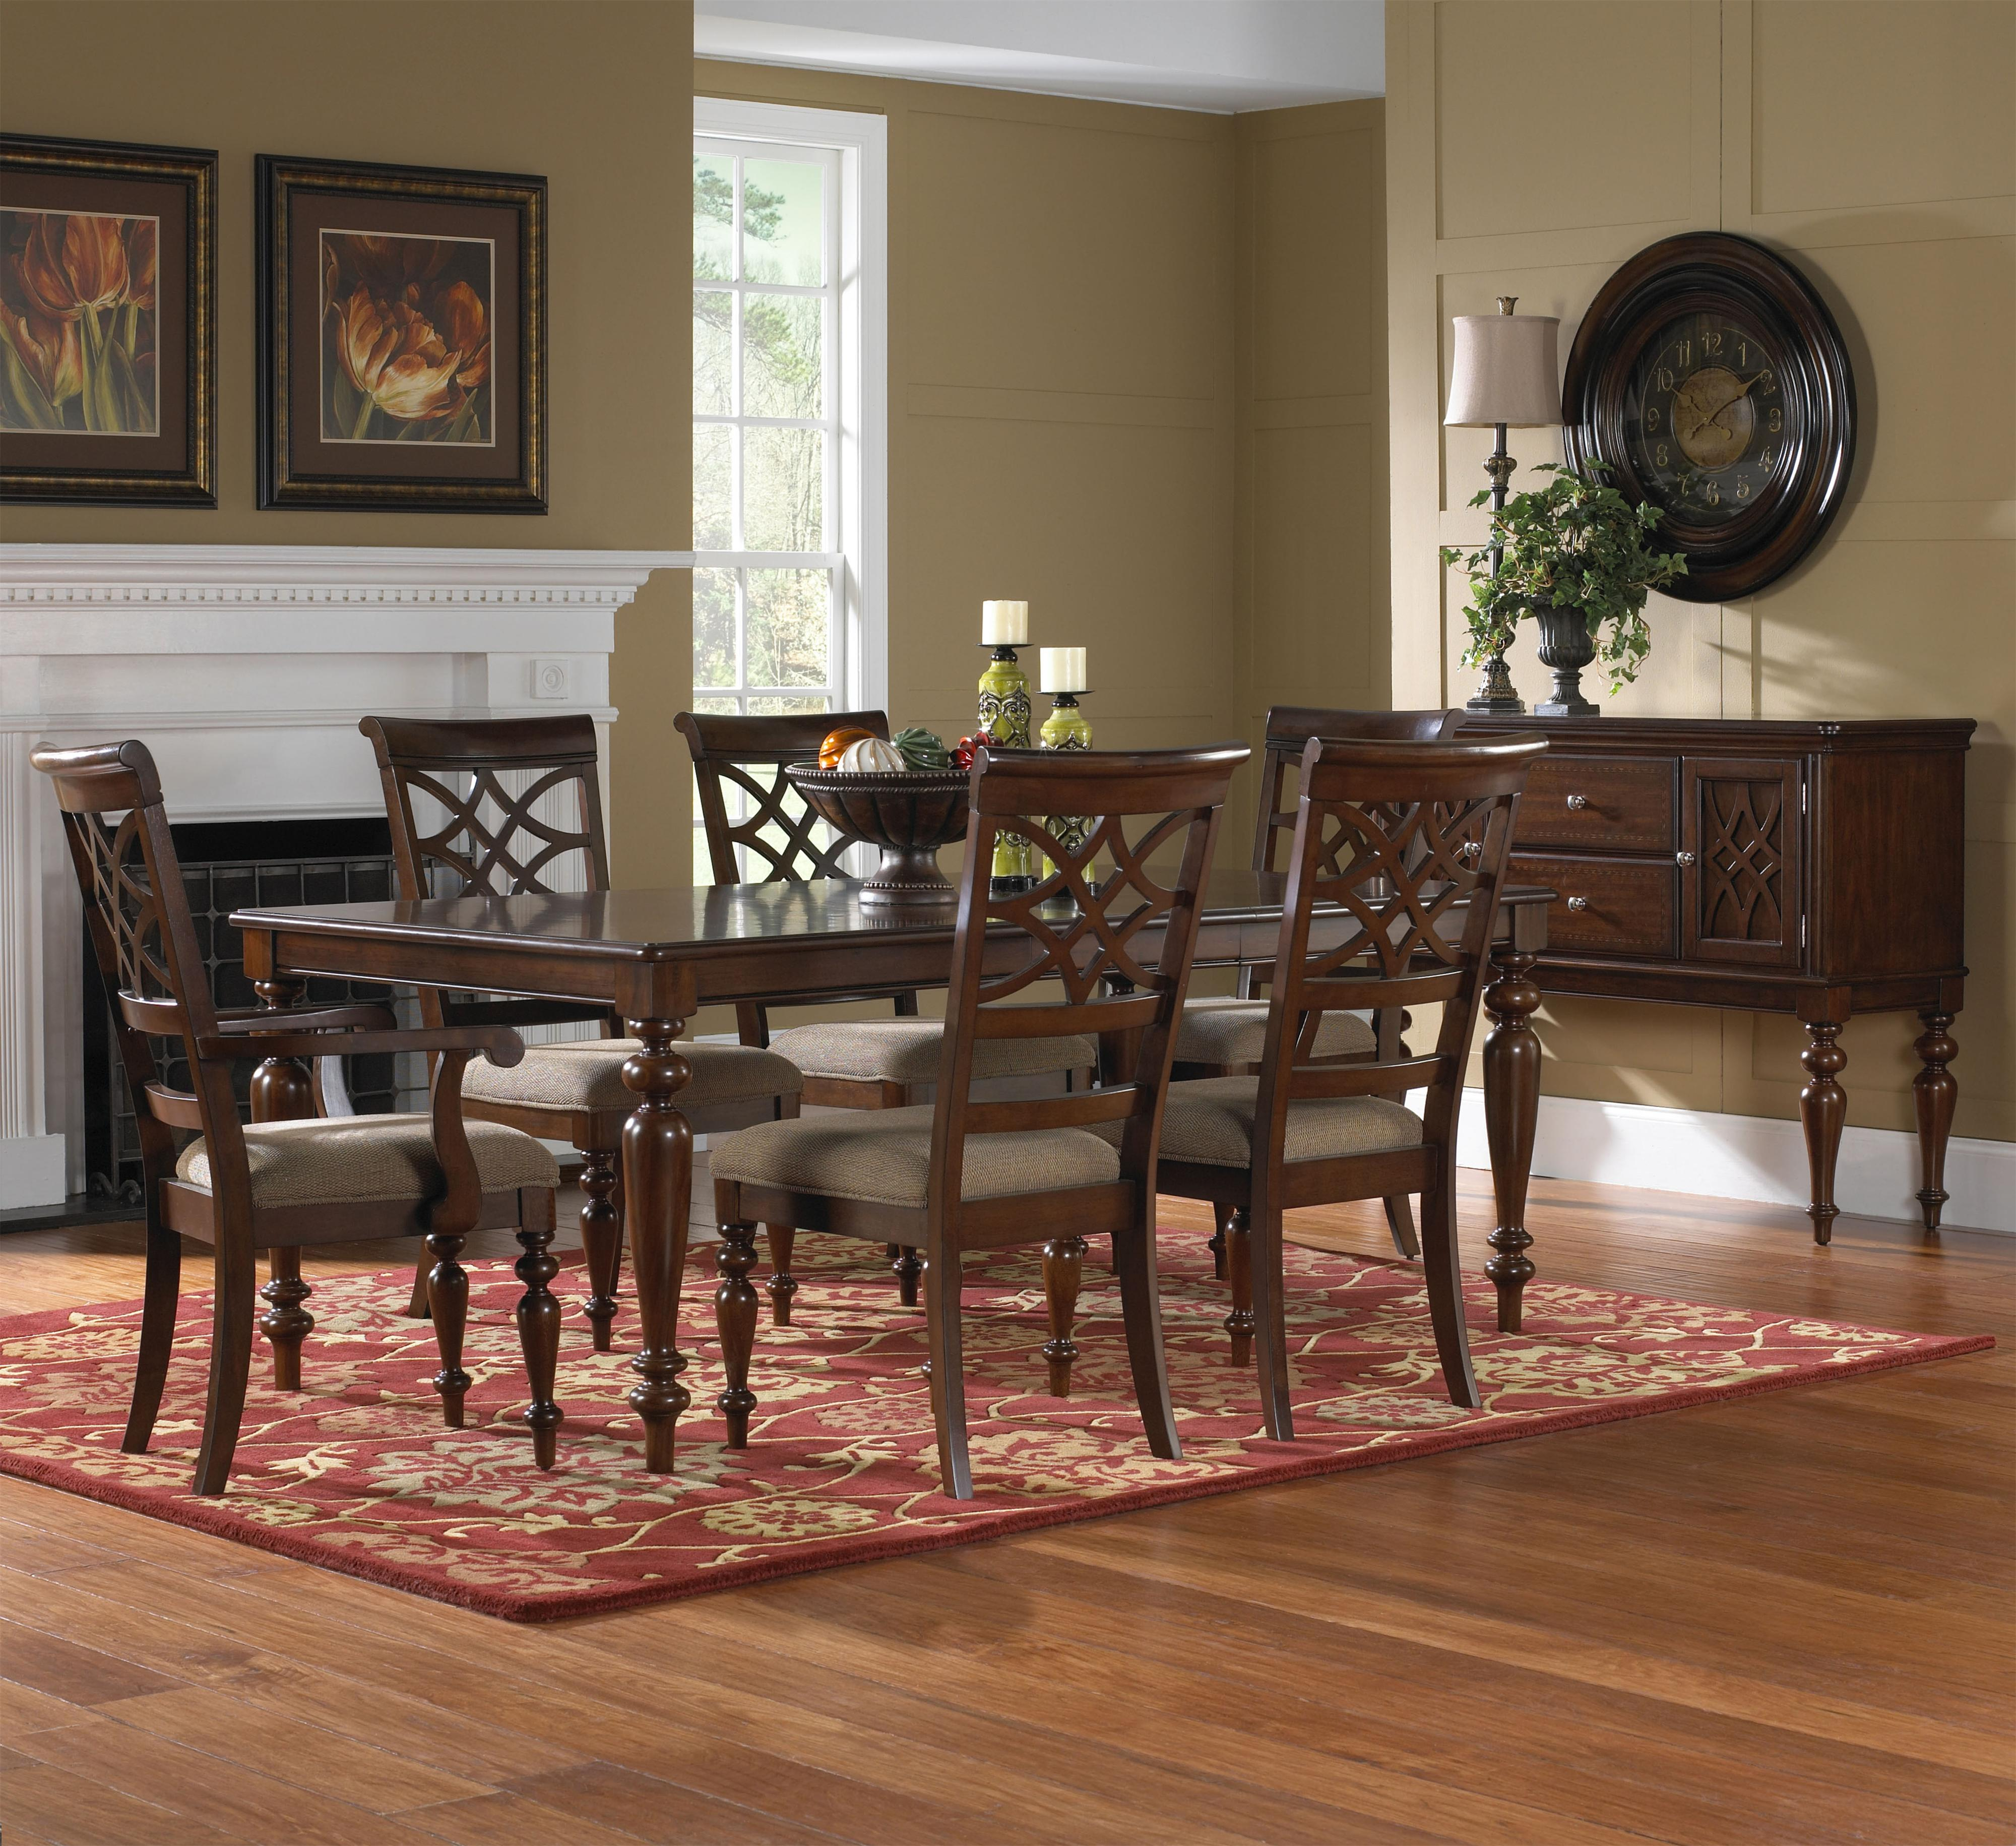 room furniture sets table set details teak chair dining garden products and imports humber seater nice